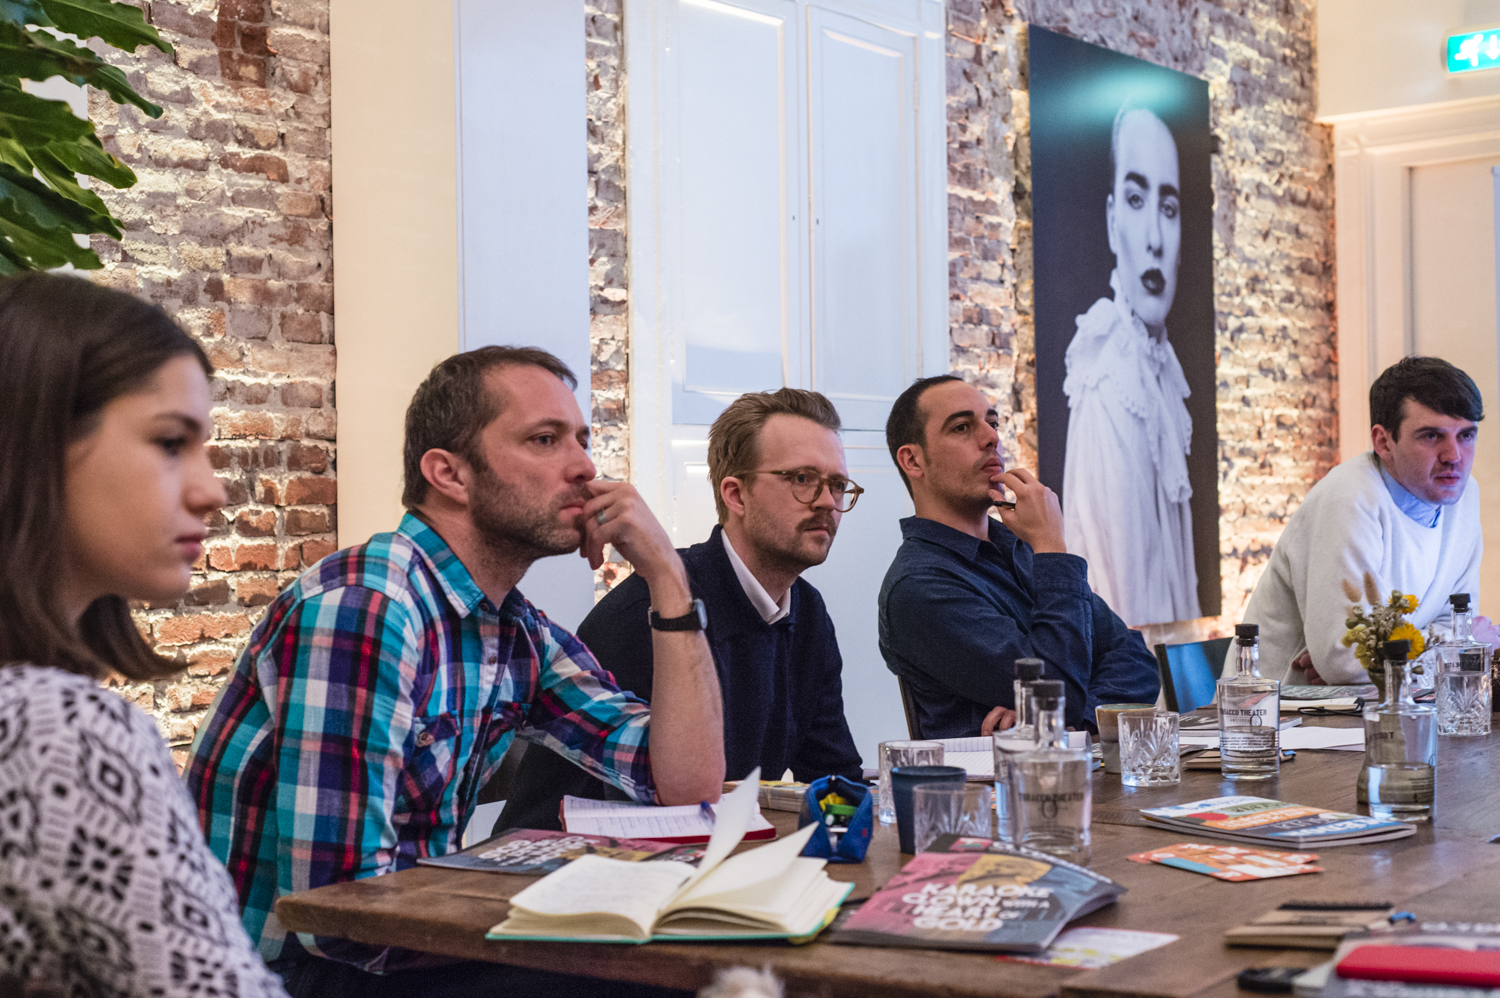 Sune Gudmundsson (centre), Koncentrat director and journalist, at an Accelerator event earlier this year